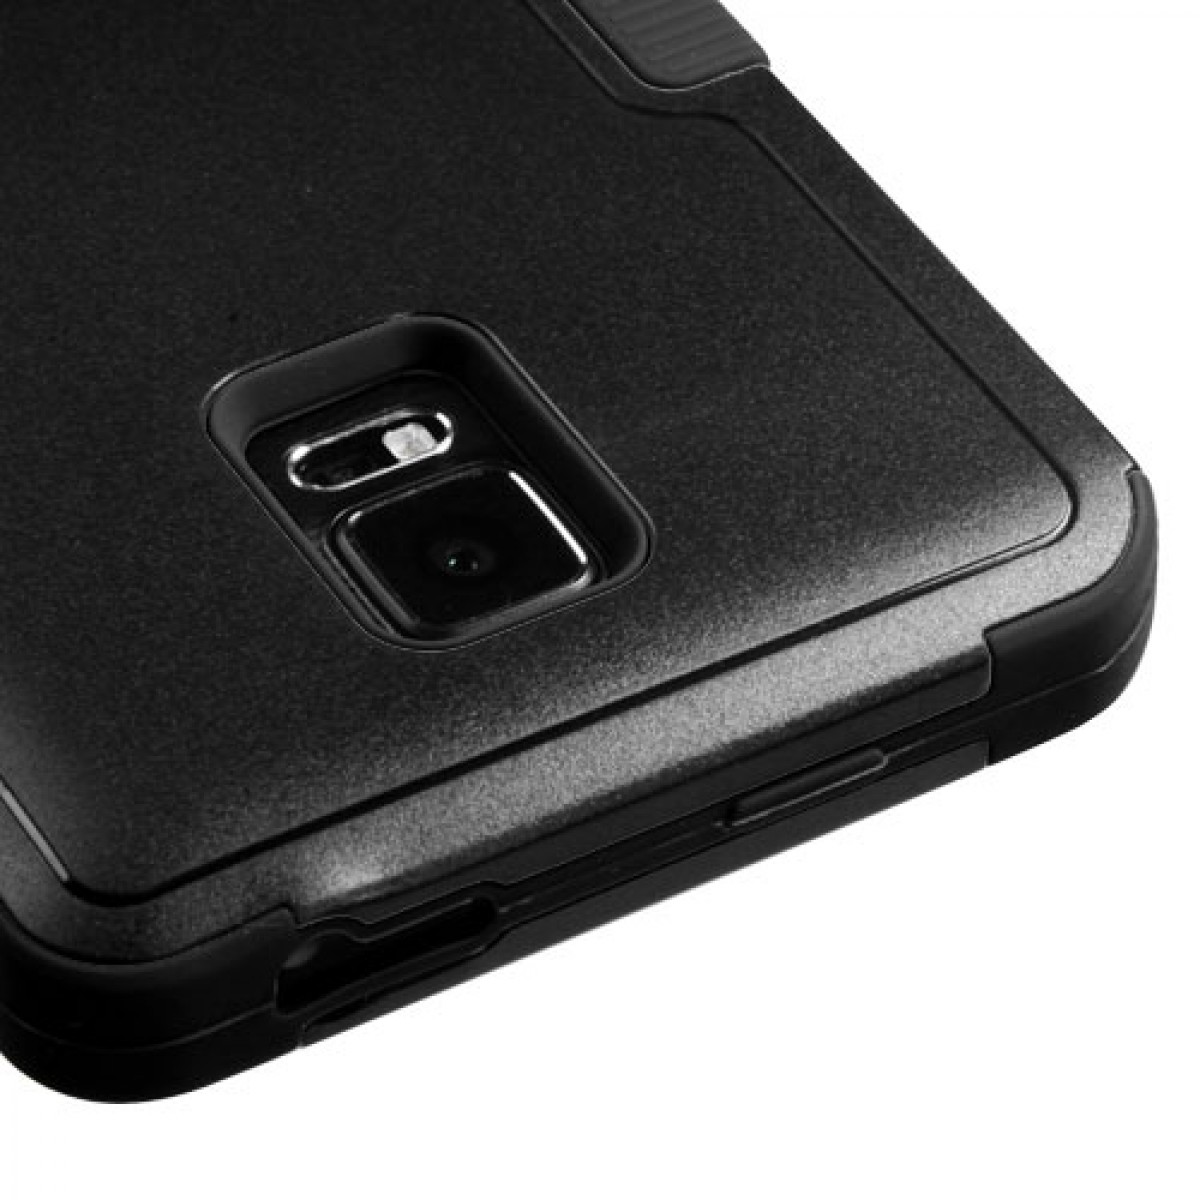 Case Protector Triple Layer Samsung Galaxy Note Edge Black W Samsunggalaxy Kickstand 17004427 By